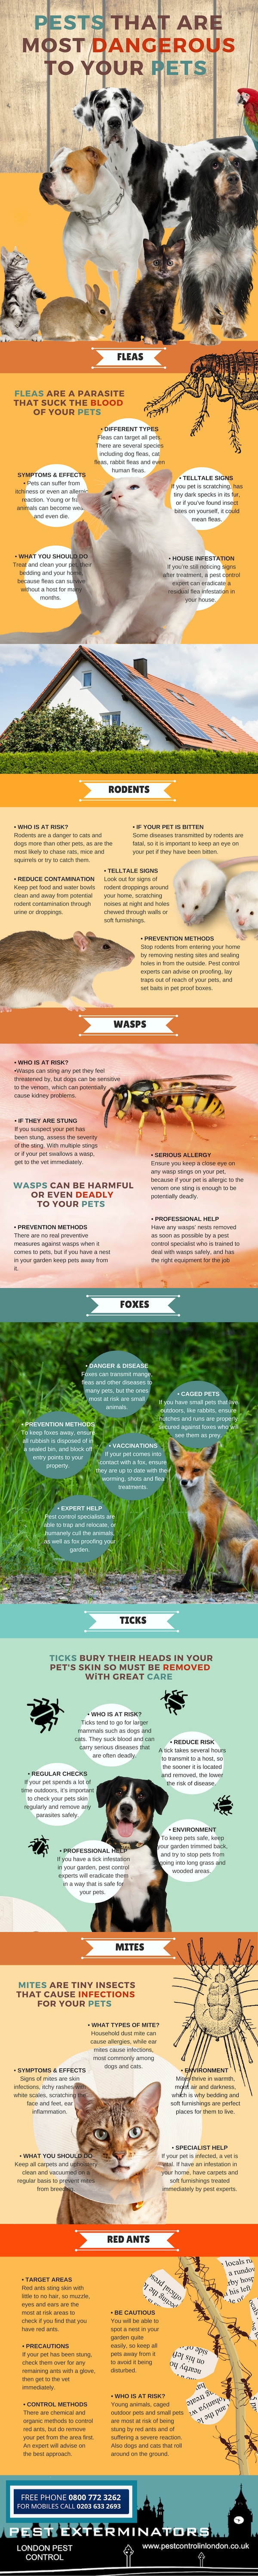 pests that are dangerous to your pets